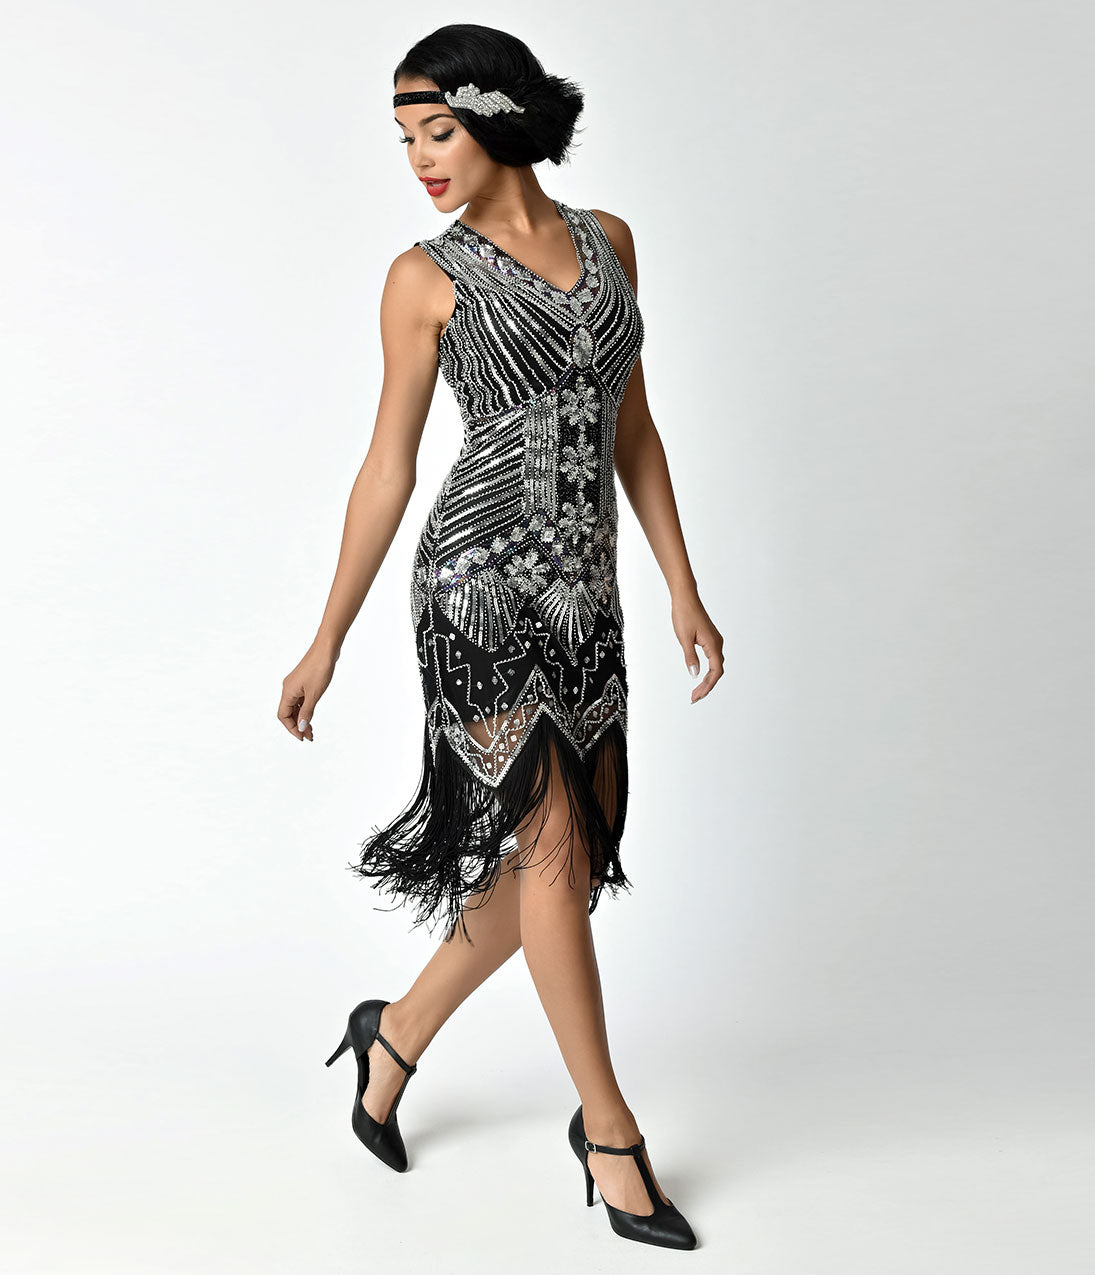 a6cd4203b74 Roaring Twenties 20s Fashion Guide Unique Vintage 1920S Deco Silver Black  Veronique Fringe Flapper Dress  98.00